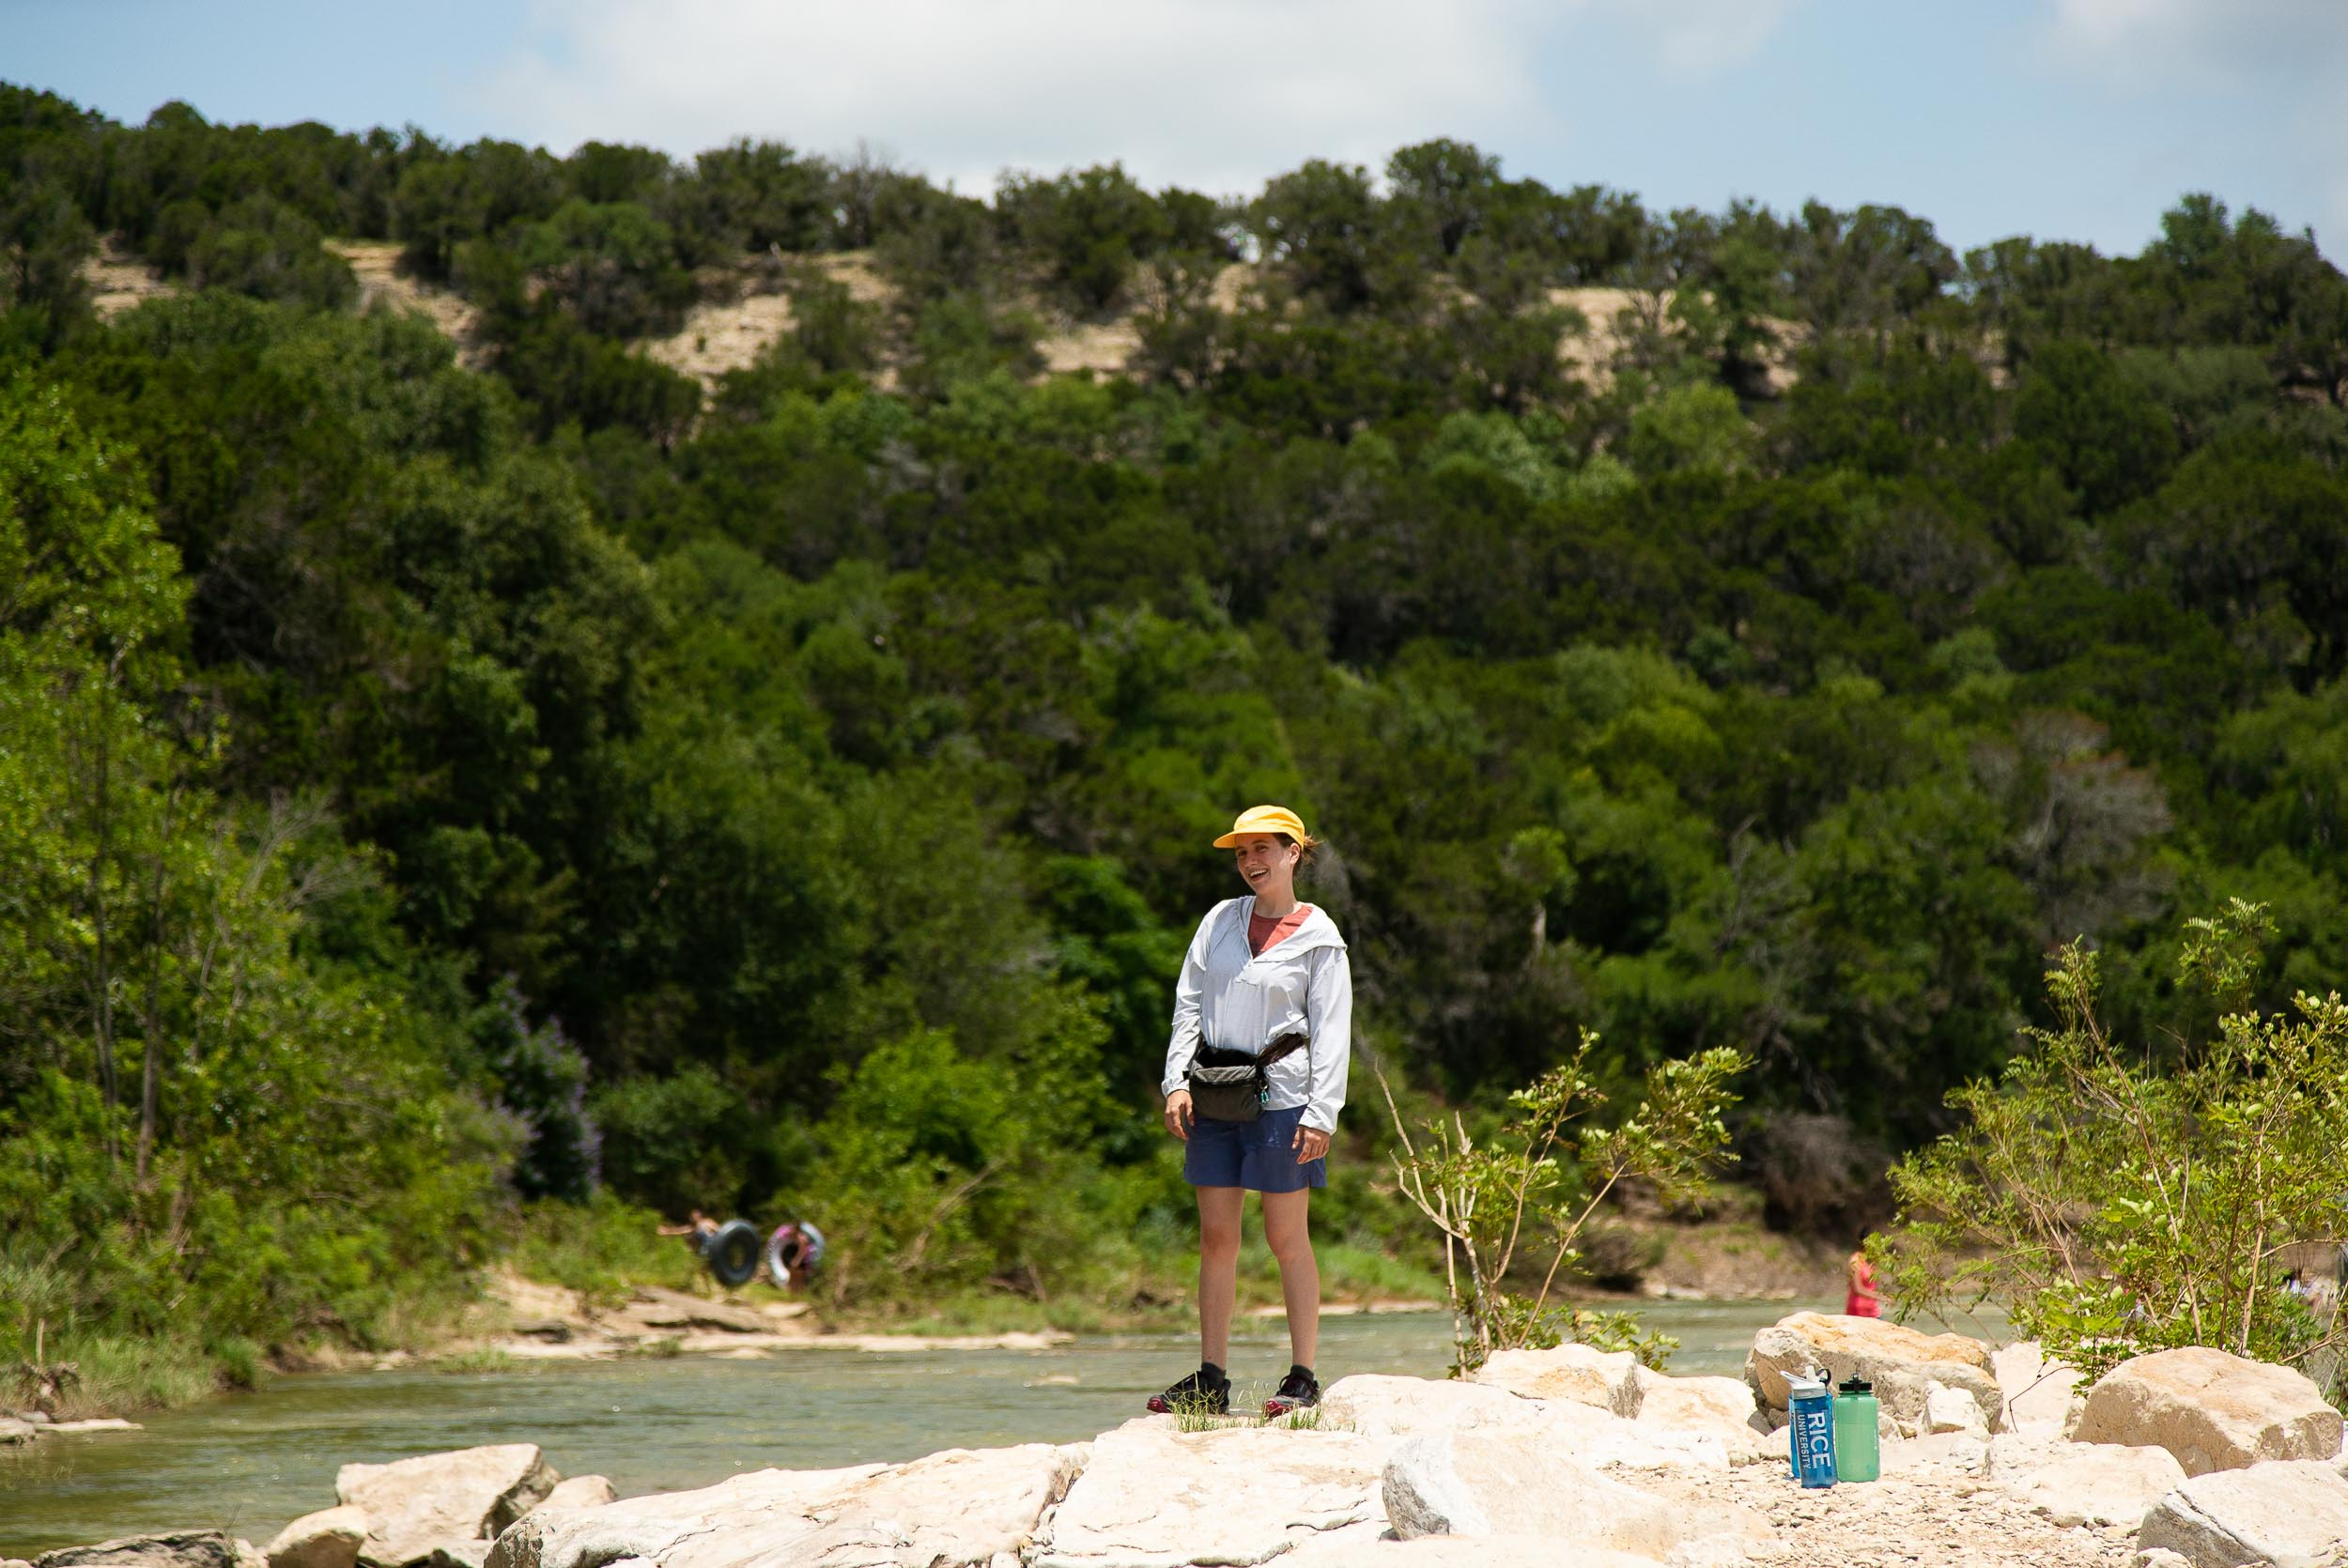 Sarah Mowery in the middle of the Paluxy River at Dinosaur Valley State Park in Glen Rose, Texas by  Cameron Mosier .